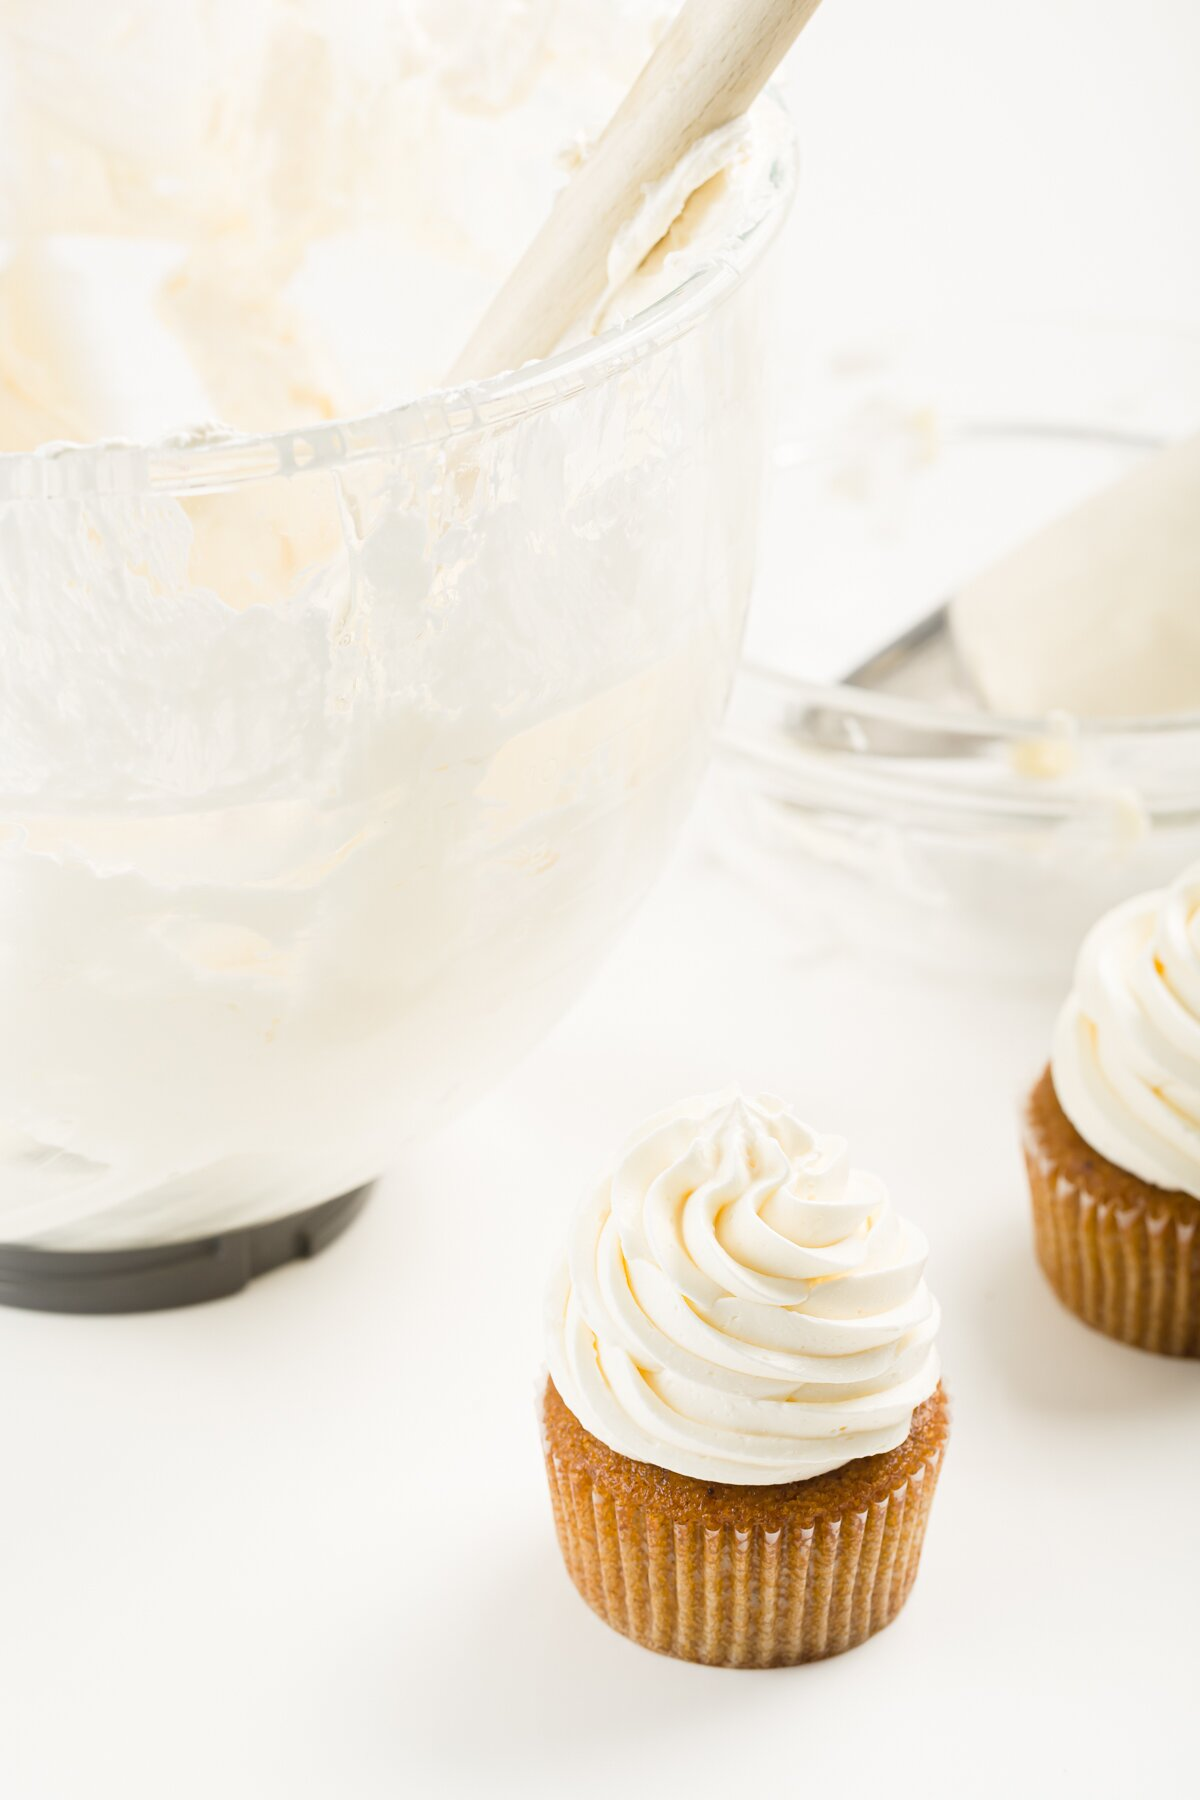 a cupcake frosted with Italian meringue buttercream frosting with a bowl of frosting behind it